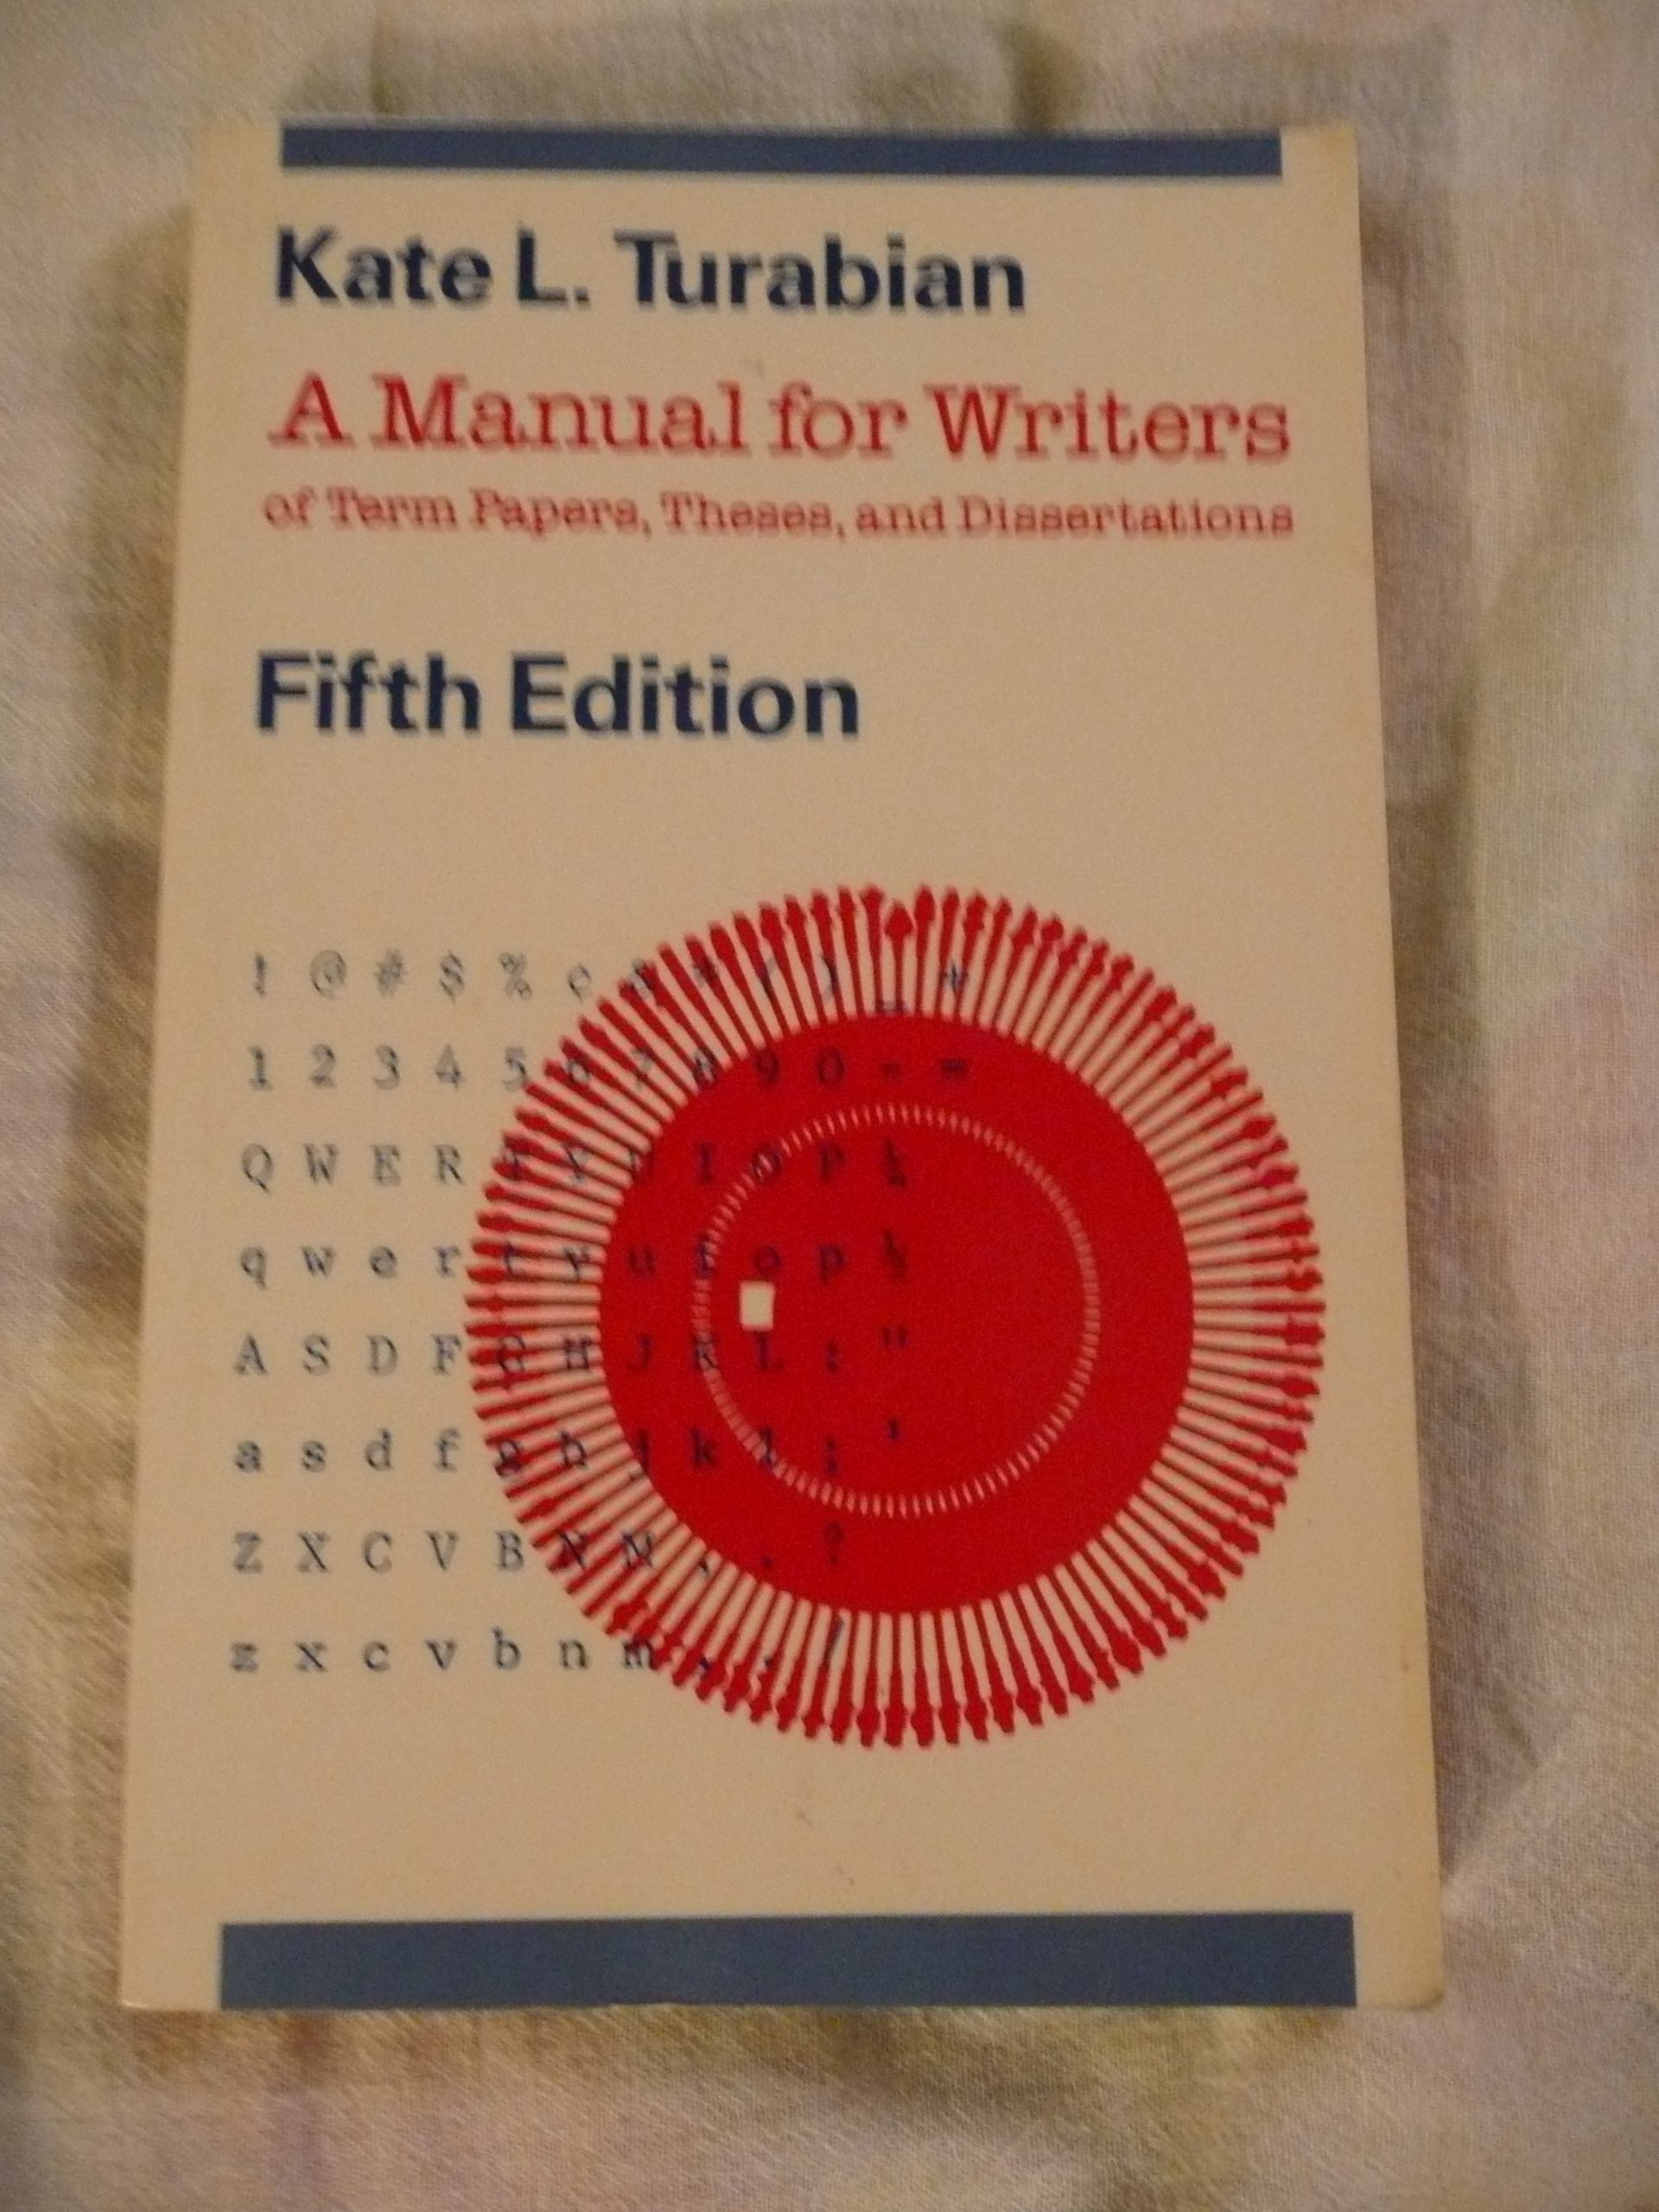 014 Research Paper Manual For Writers Of Papers Theses And Dissertations Magnificent 8th 13 A 9th Edition Apa Full